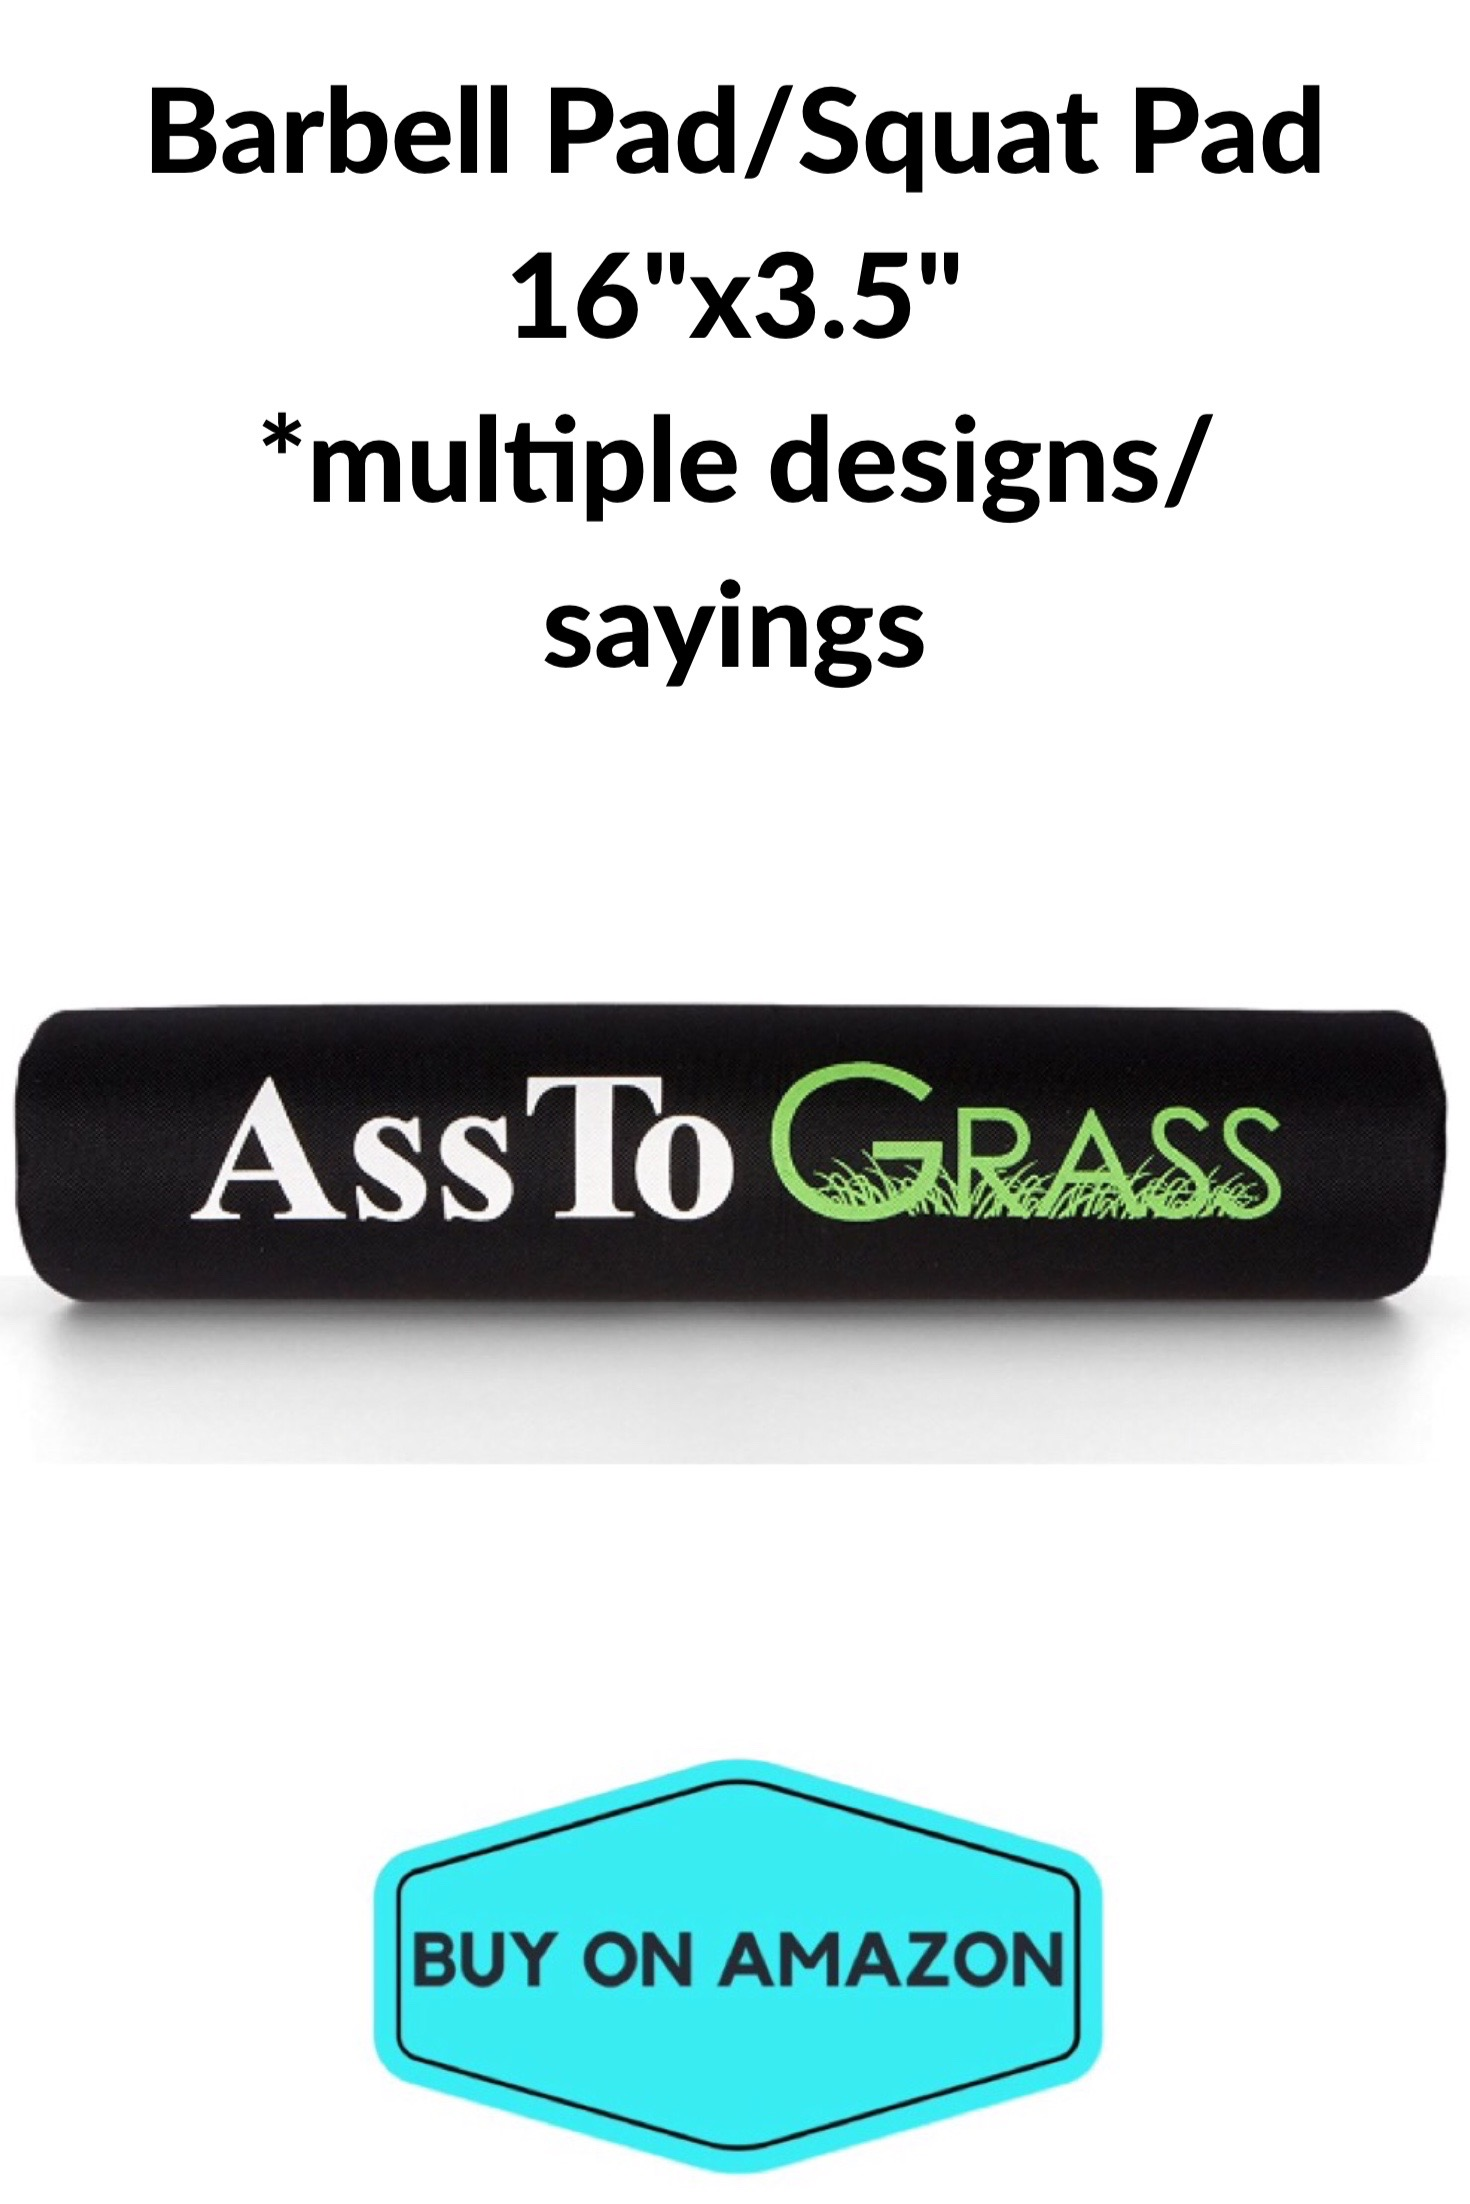 'Ass To Grass' Barbell Pad/Squat Pad